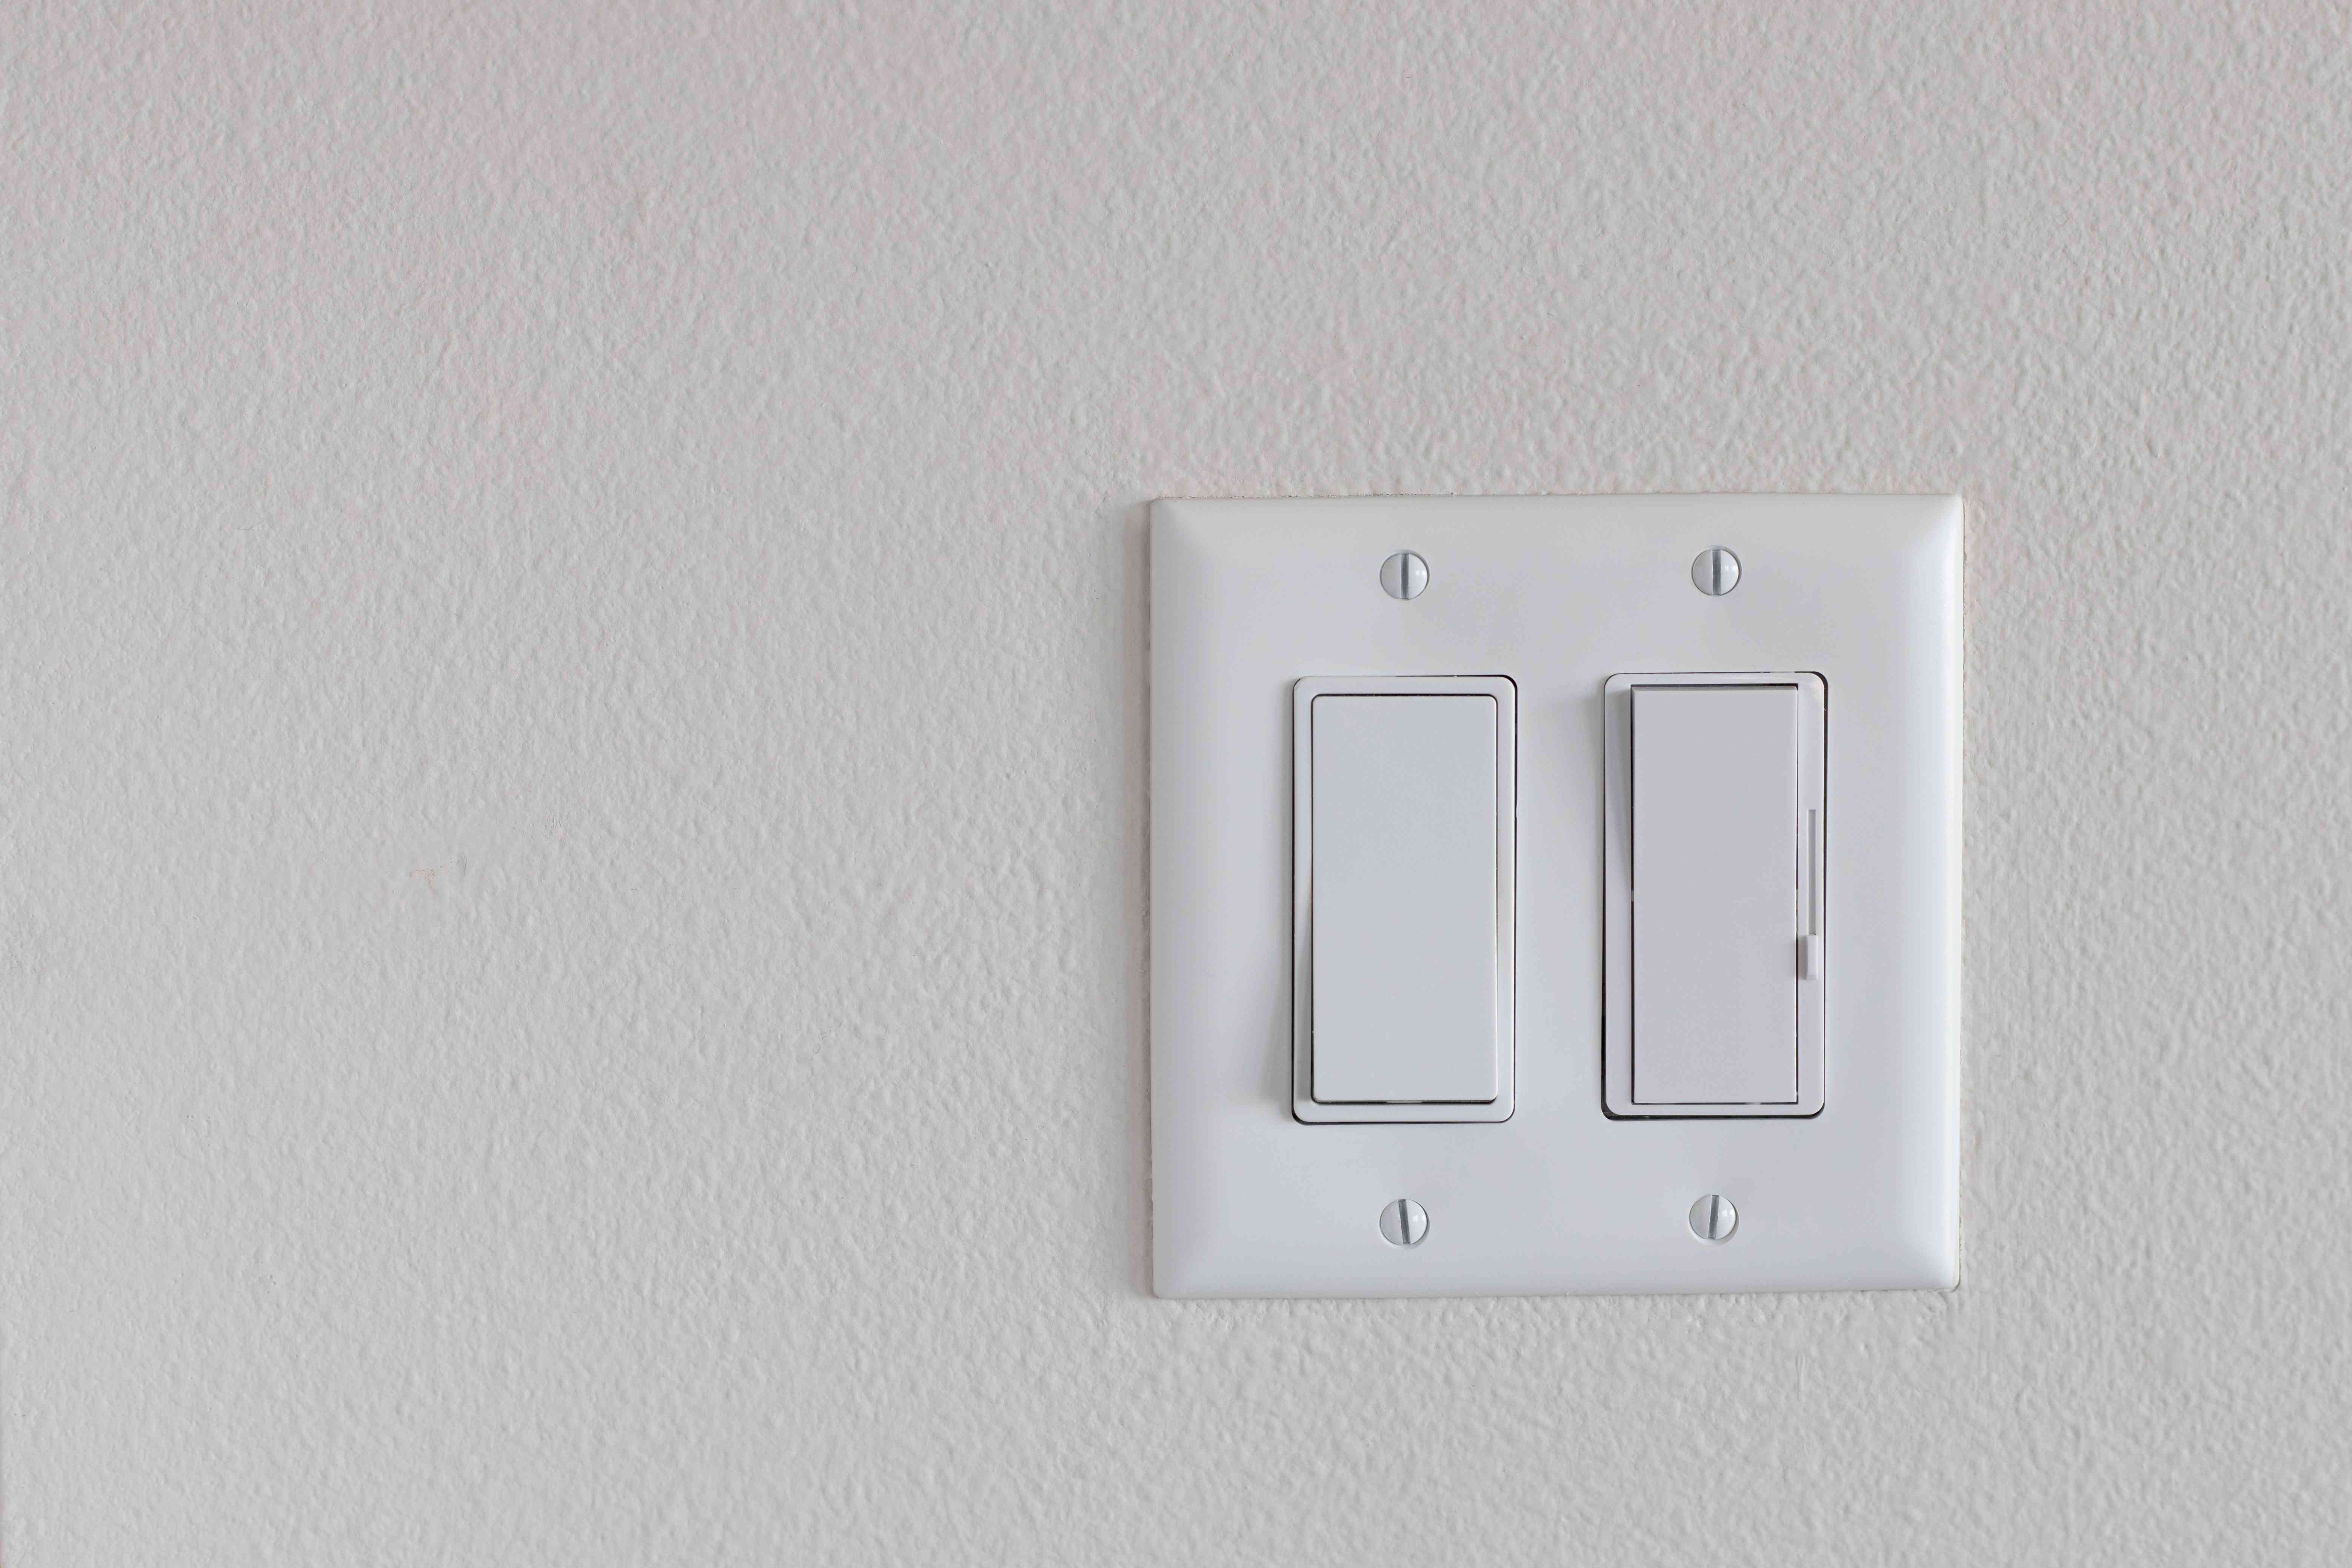 Light switch next to dimmer switch on white wall to lower electric bill